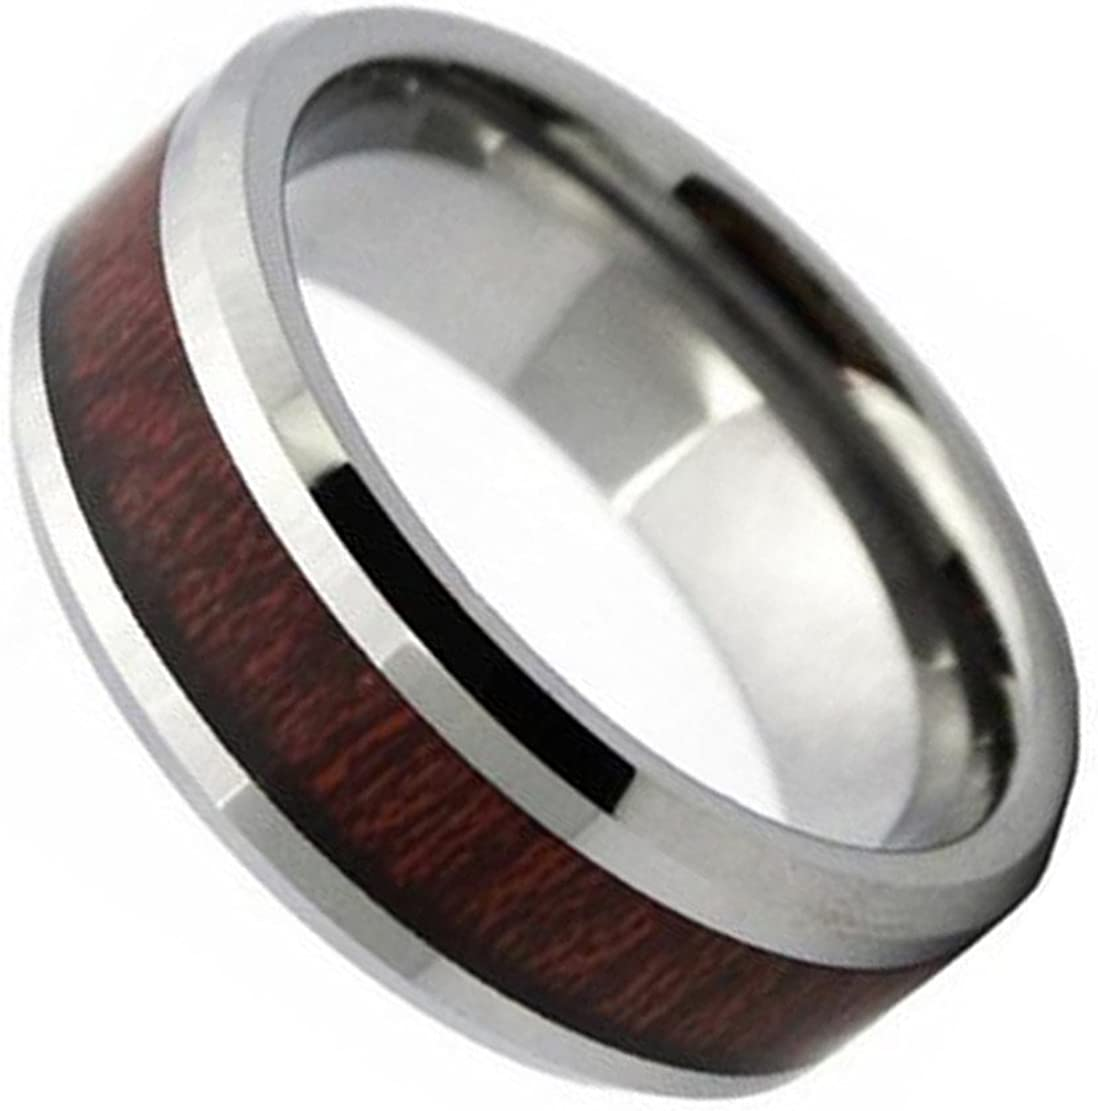 MYVIYSENY Support Customization Tungsten Steel Ring Wood Inlaid High Polished Retro Wood Jewelry 8MM